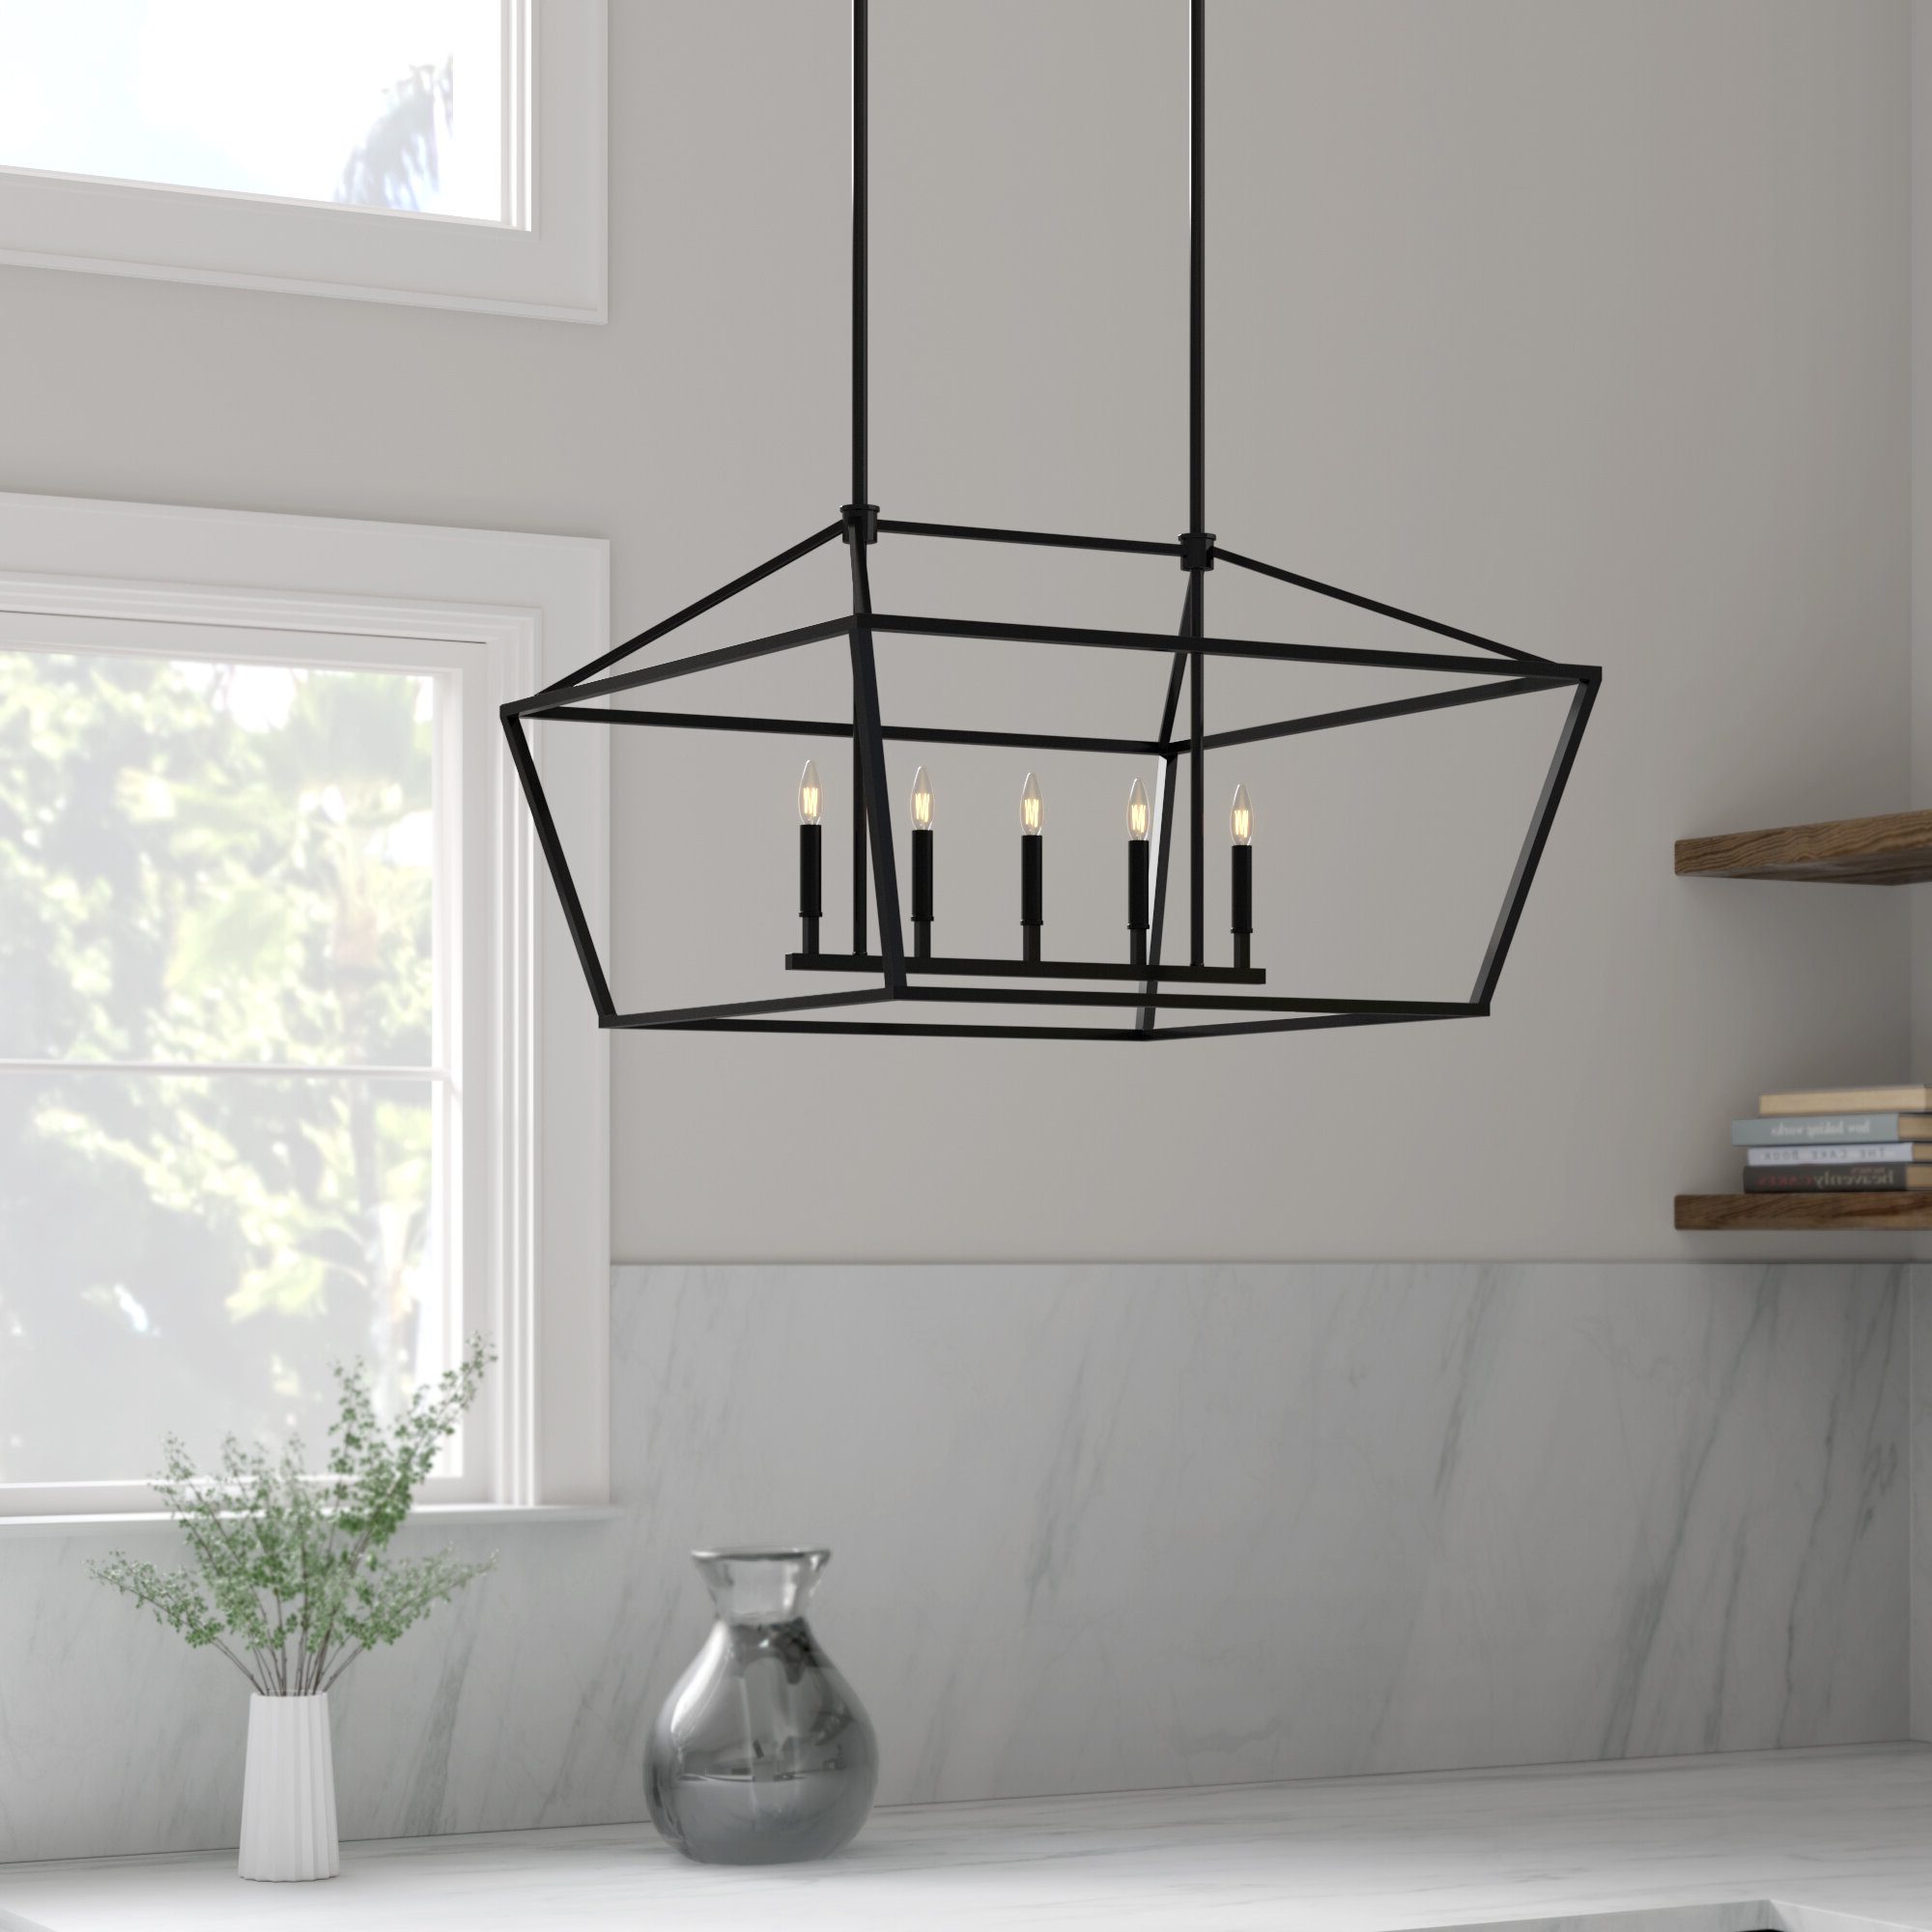 Poisson Indigo 5 Light Kitchen Island Linear Pendant With Regard To Current Odie 8 Light Kitchen Island Square / Rectangle Pendants (View 19 of 25)